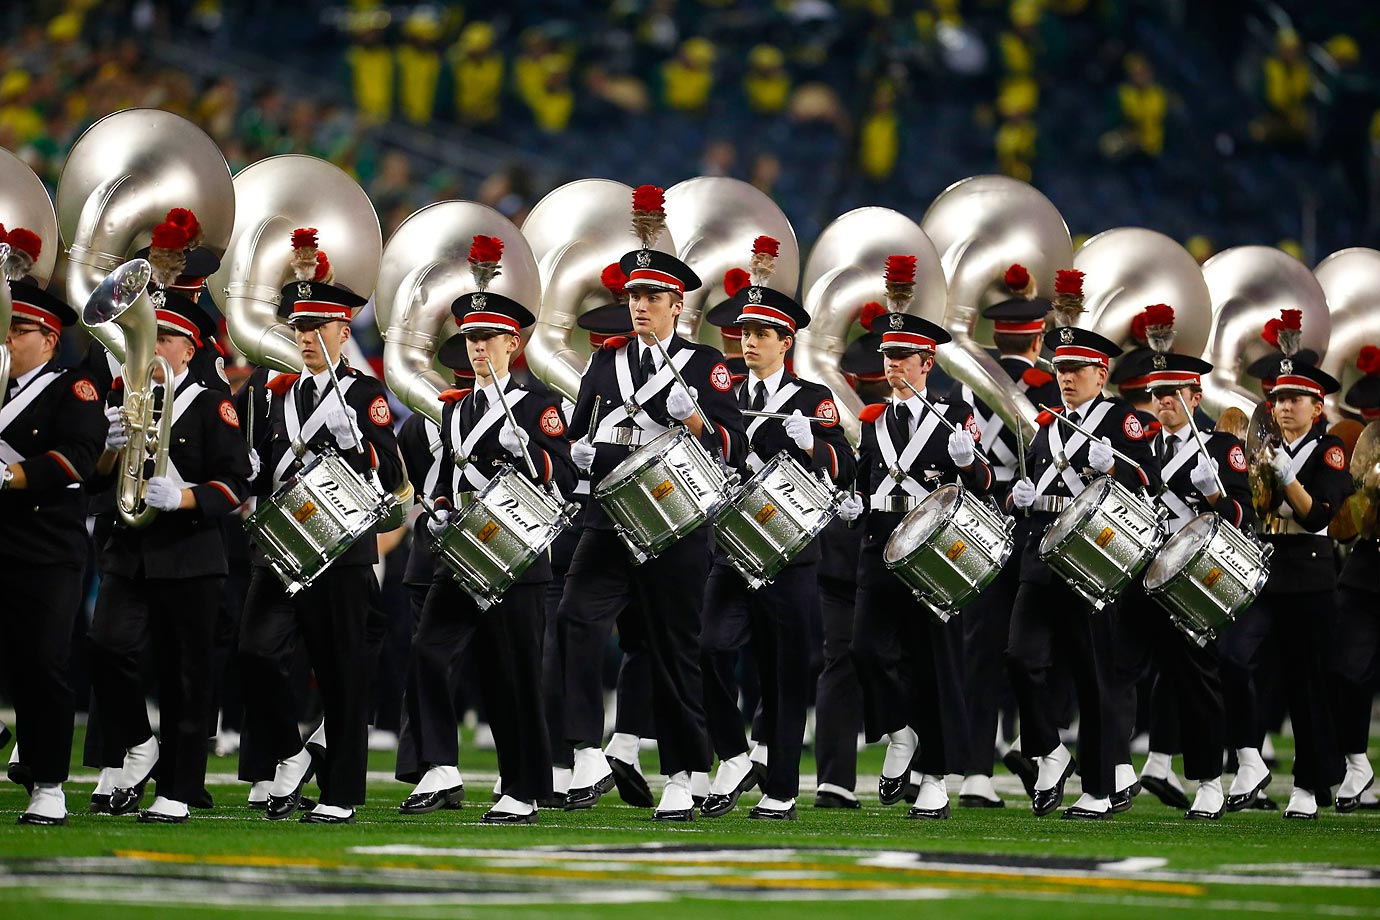 The Ohio State Buckeyes marching band performs.